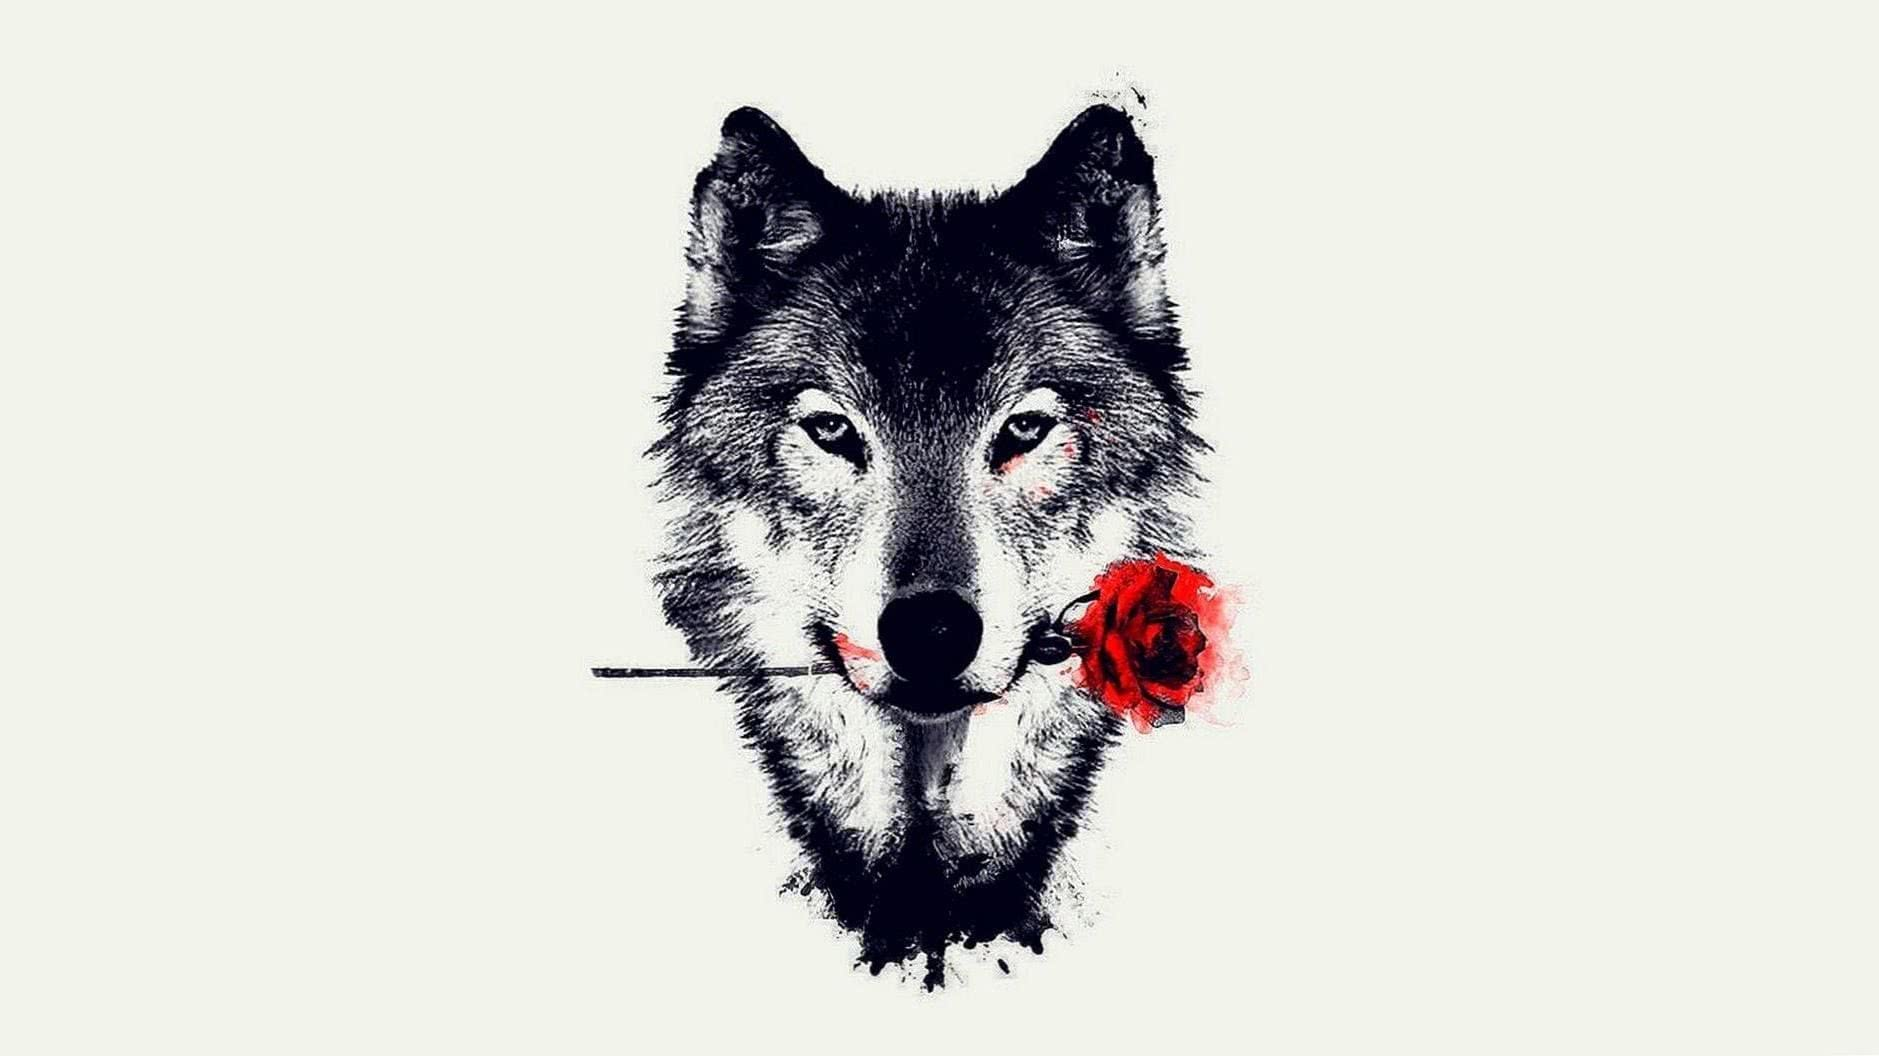 HD Wolf Wallpapers For Laptop